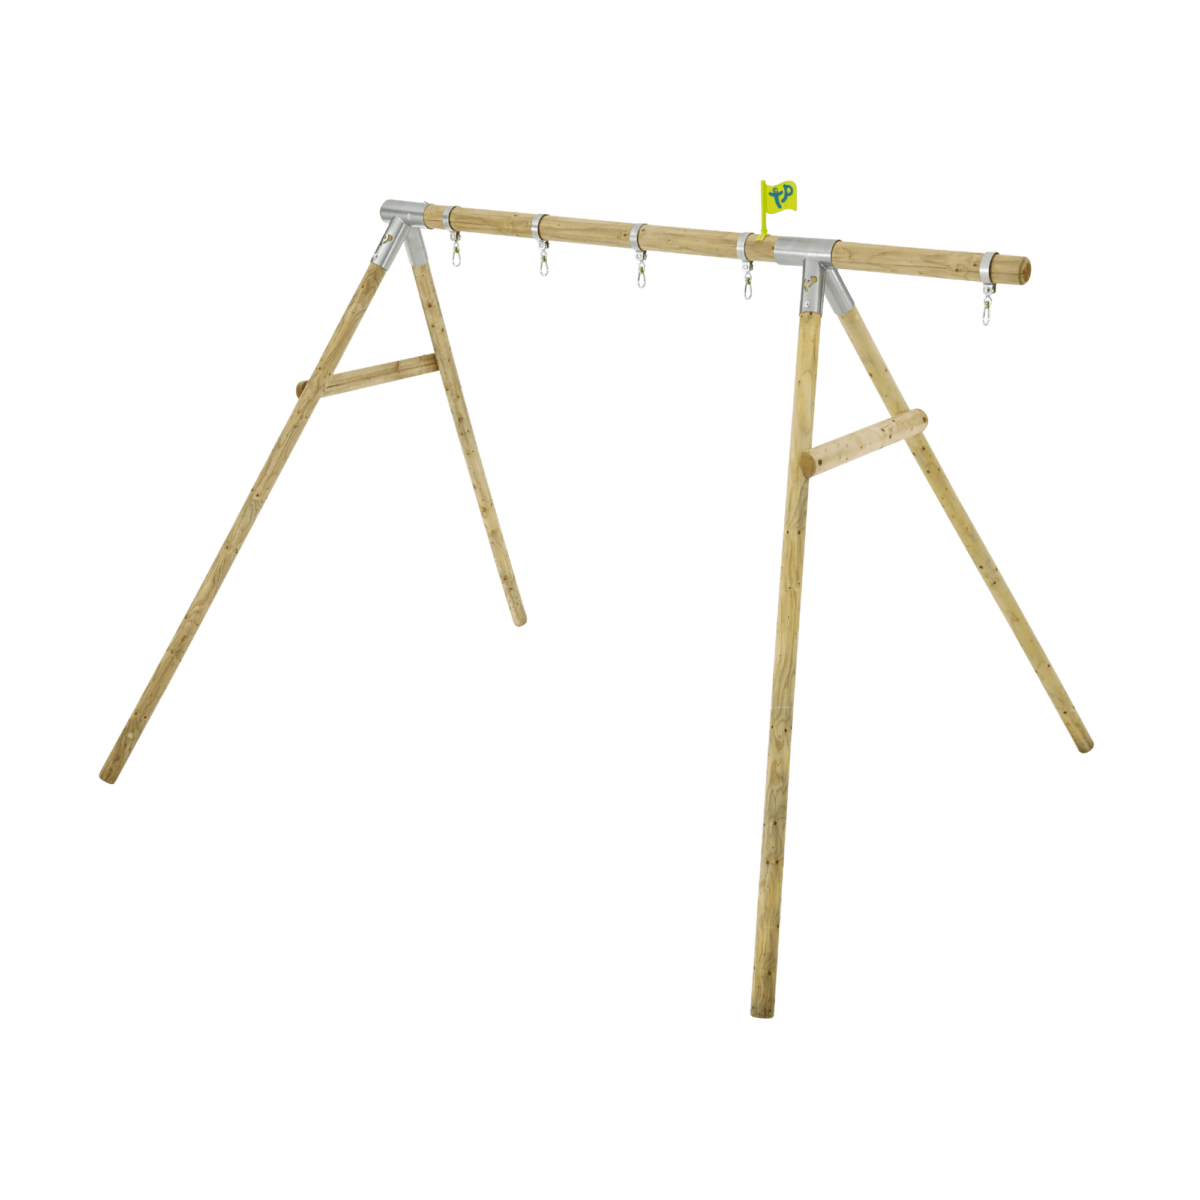 Tp Knightswood Double Wooden Swing Frame & Extension-fsc?